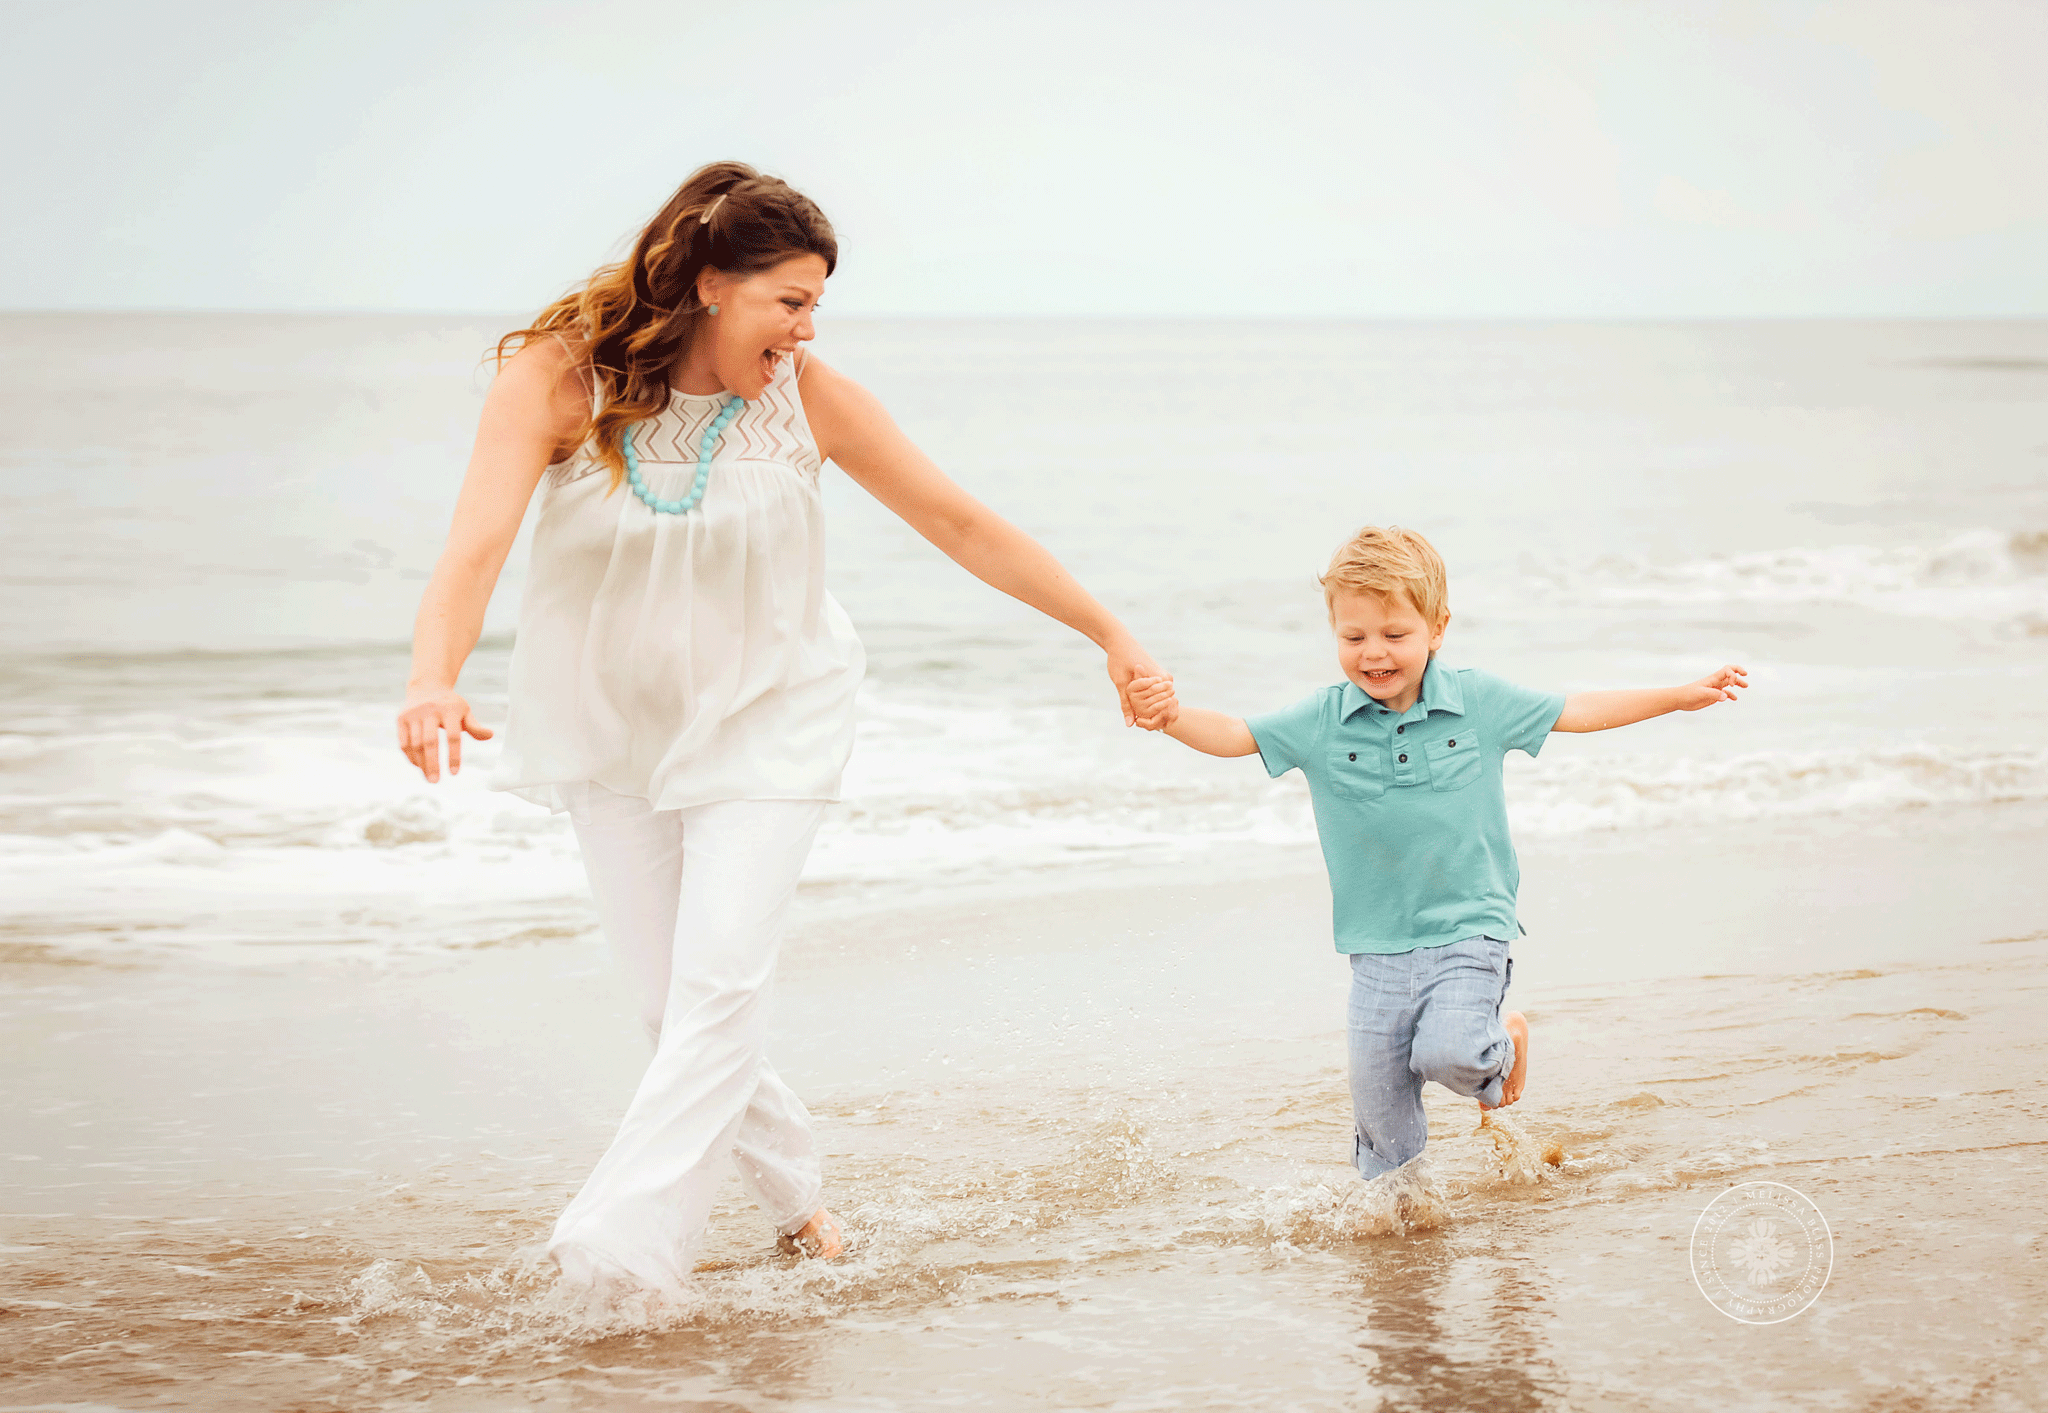 sandbridge-beach-family-photographers-melissa-bliss-photography-virginia-beach-norfolk-photographer-1.png